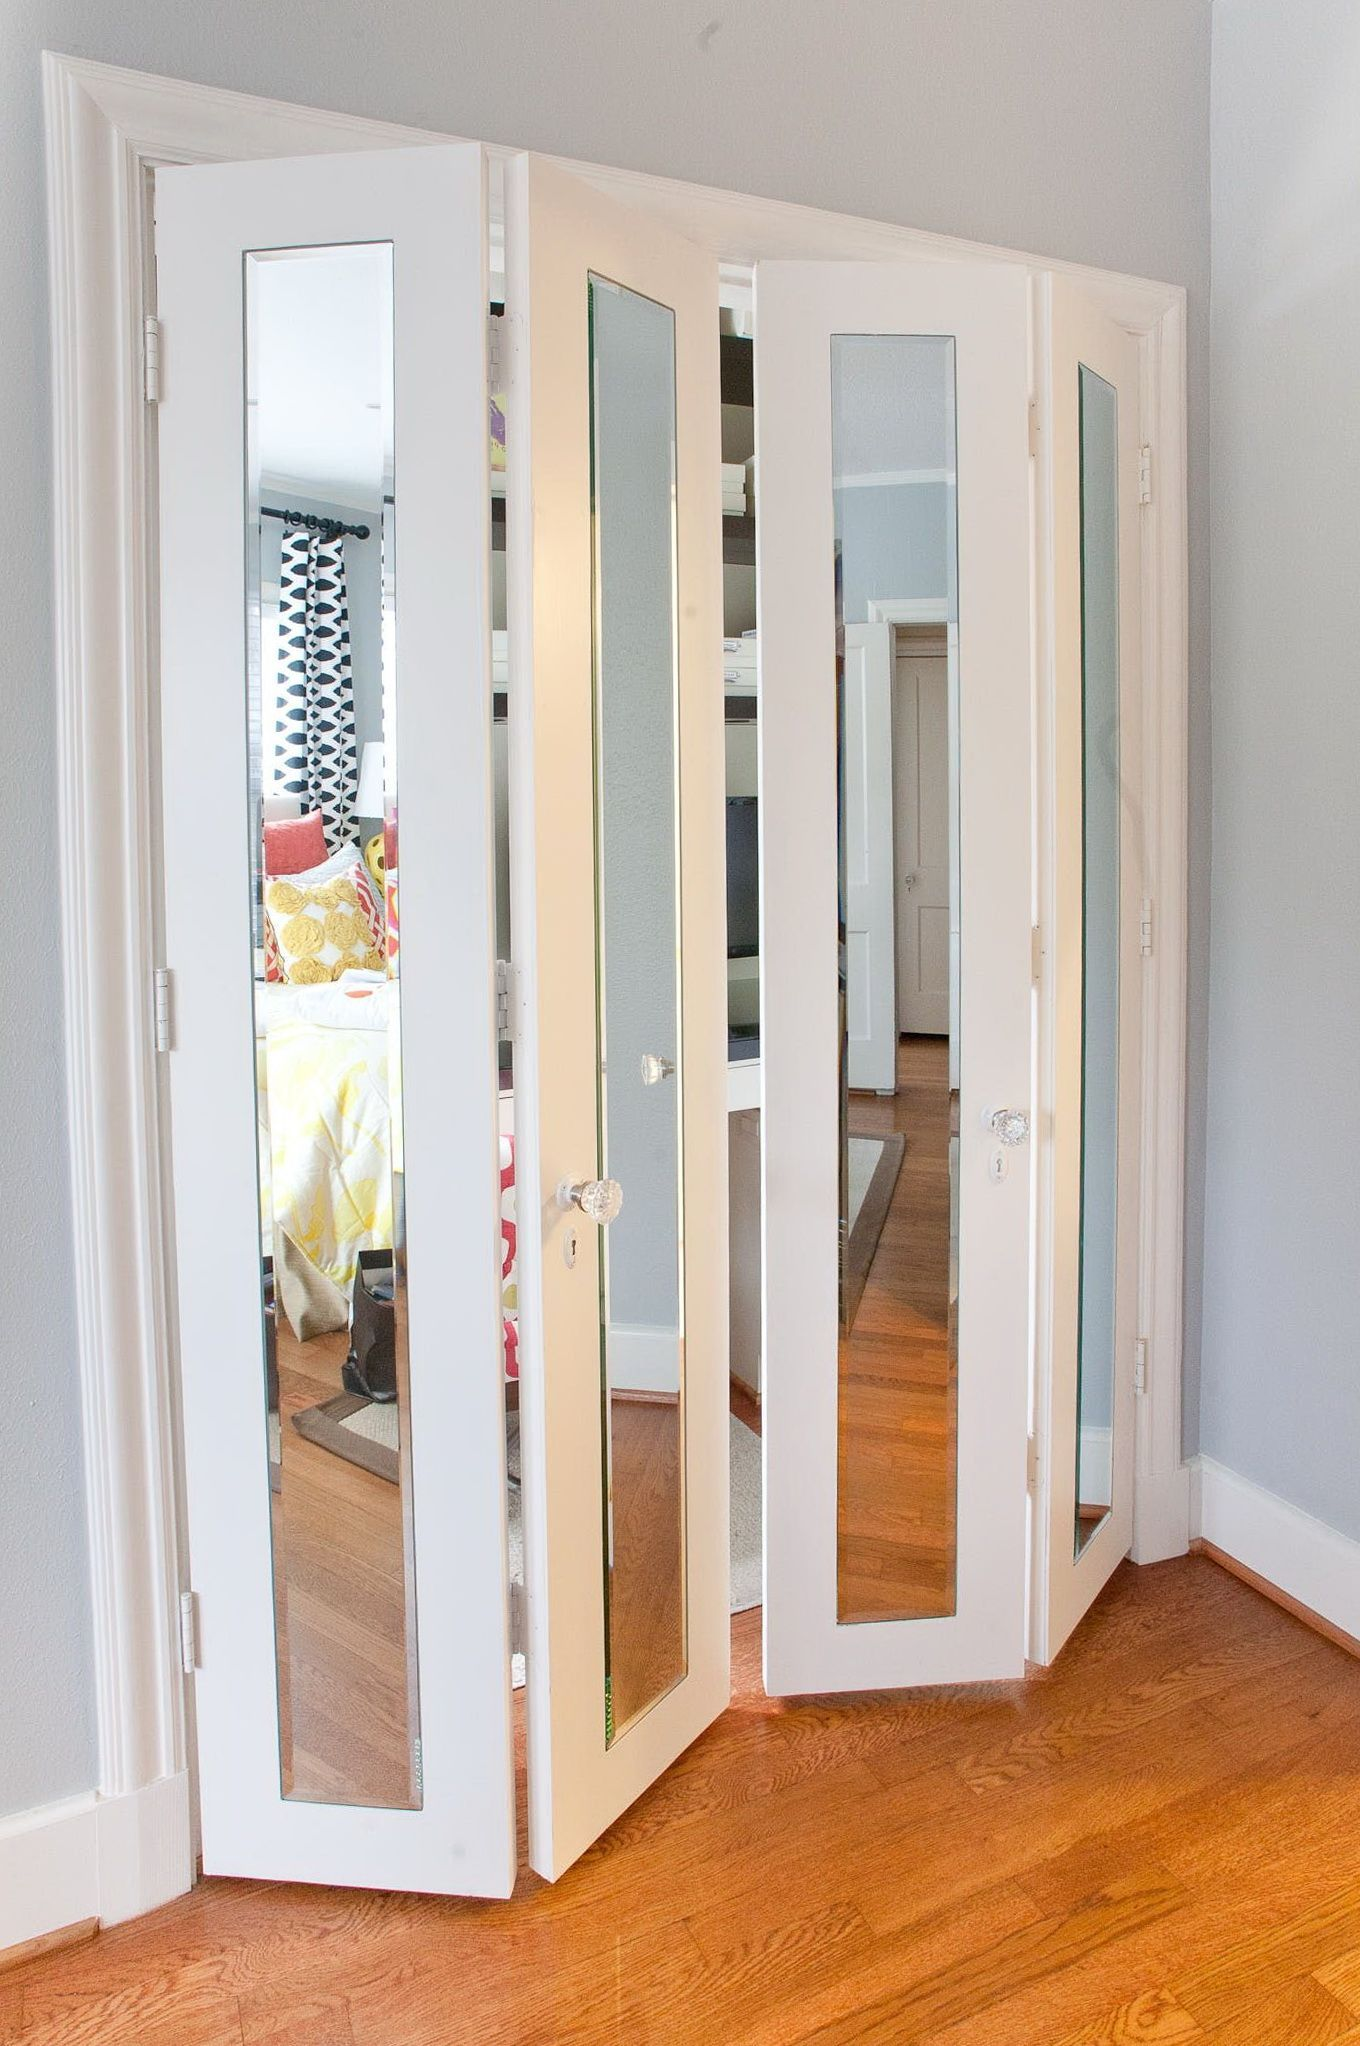 Create A New Look For Your Room With These Closet Door Ideas Schlafzimmer Schranktüren Spiegelschranktüren Schiebeschranktüren